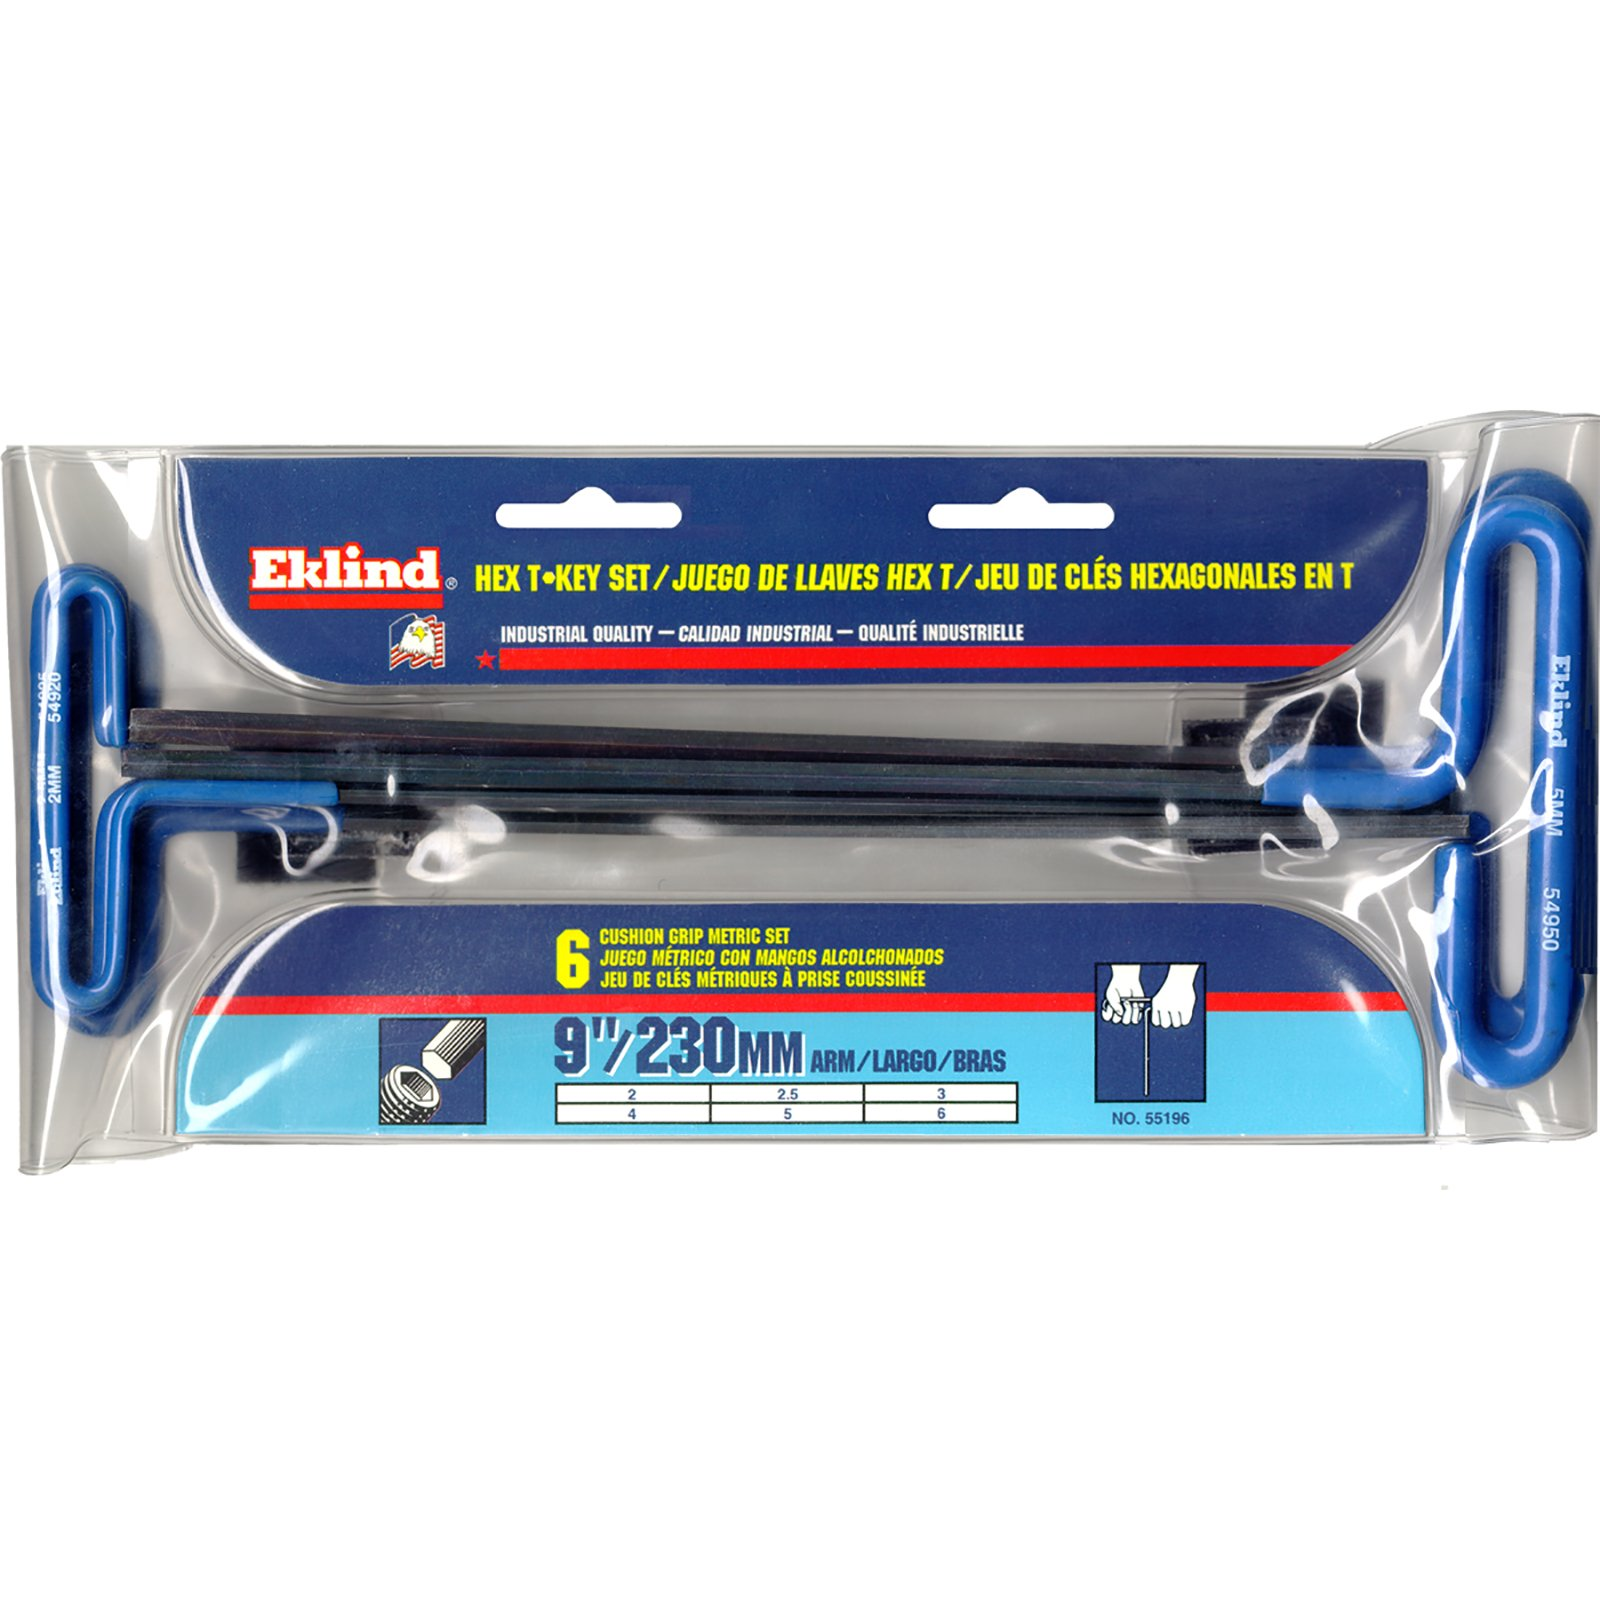 Eklind 55196 6 Piece 9'' Series Cushion Grip Hex T-Key Set with Pouch, Sizes: 2 mm - 6 mm